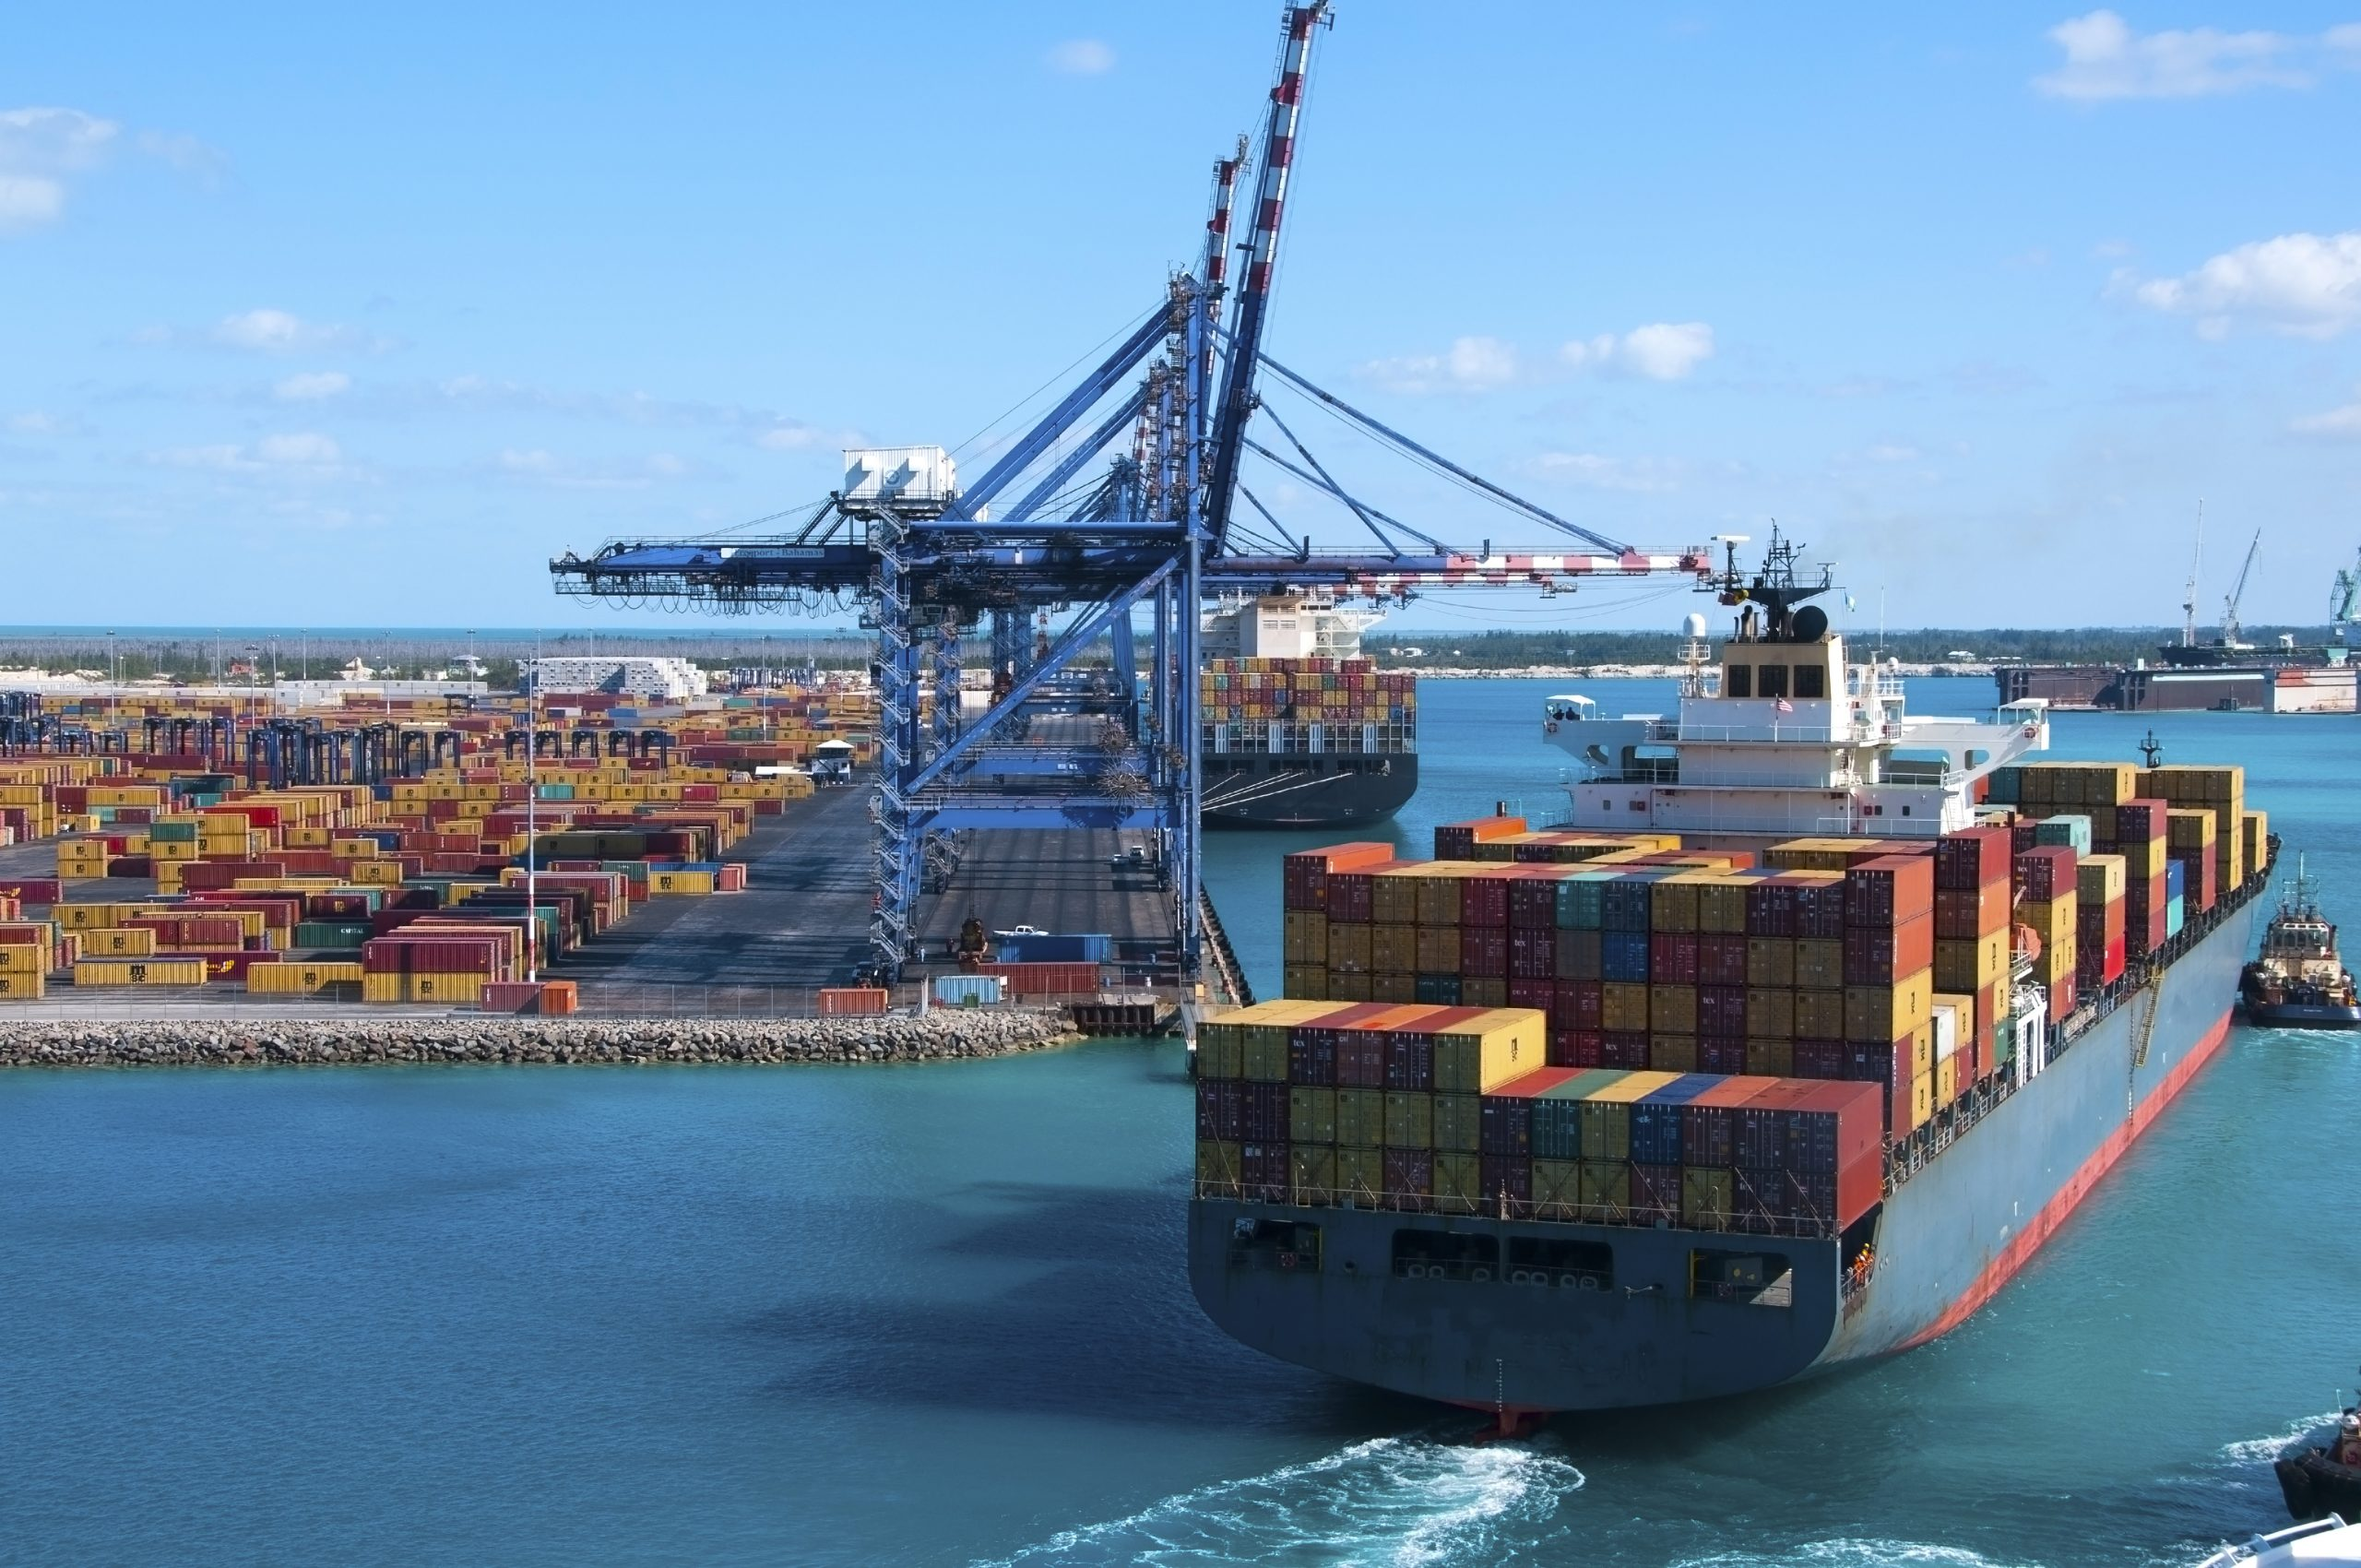 A large container ship sailing into a port with a tug boat next to it